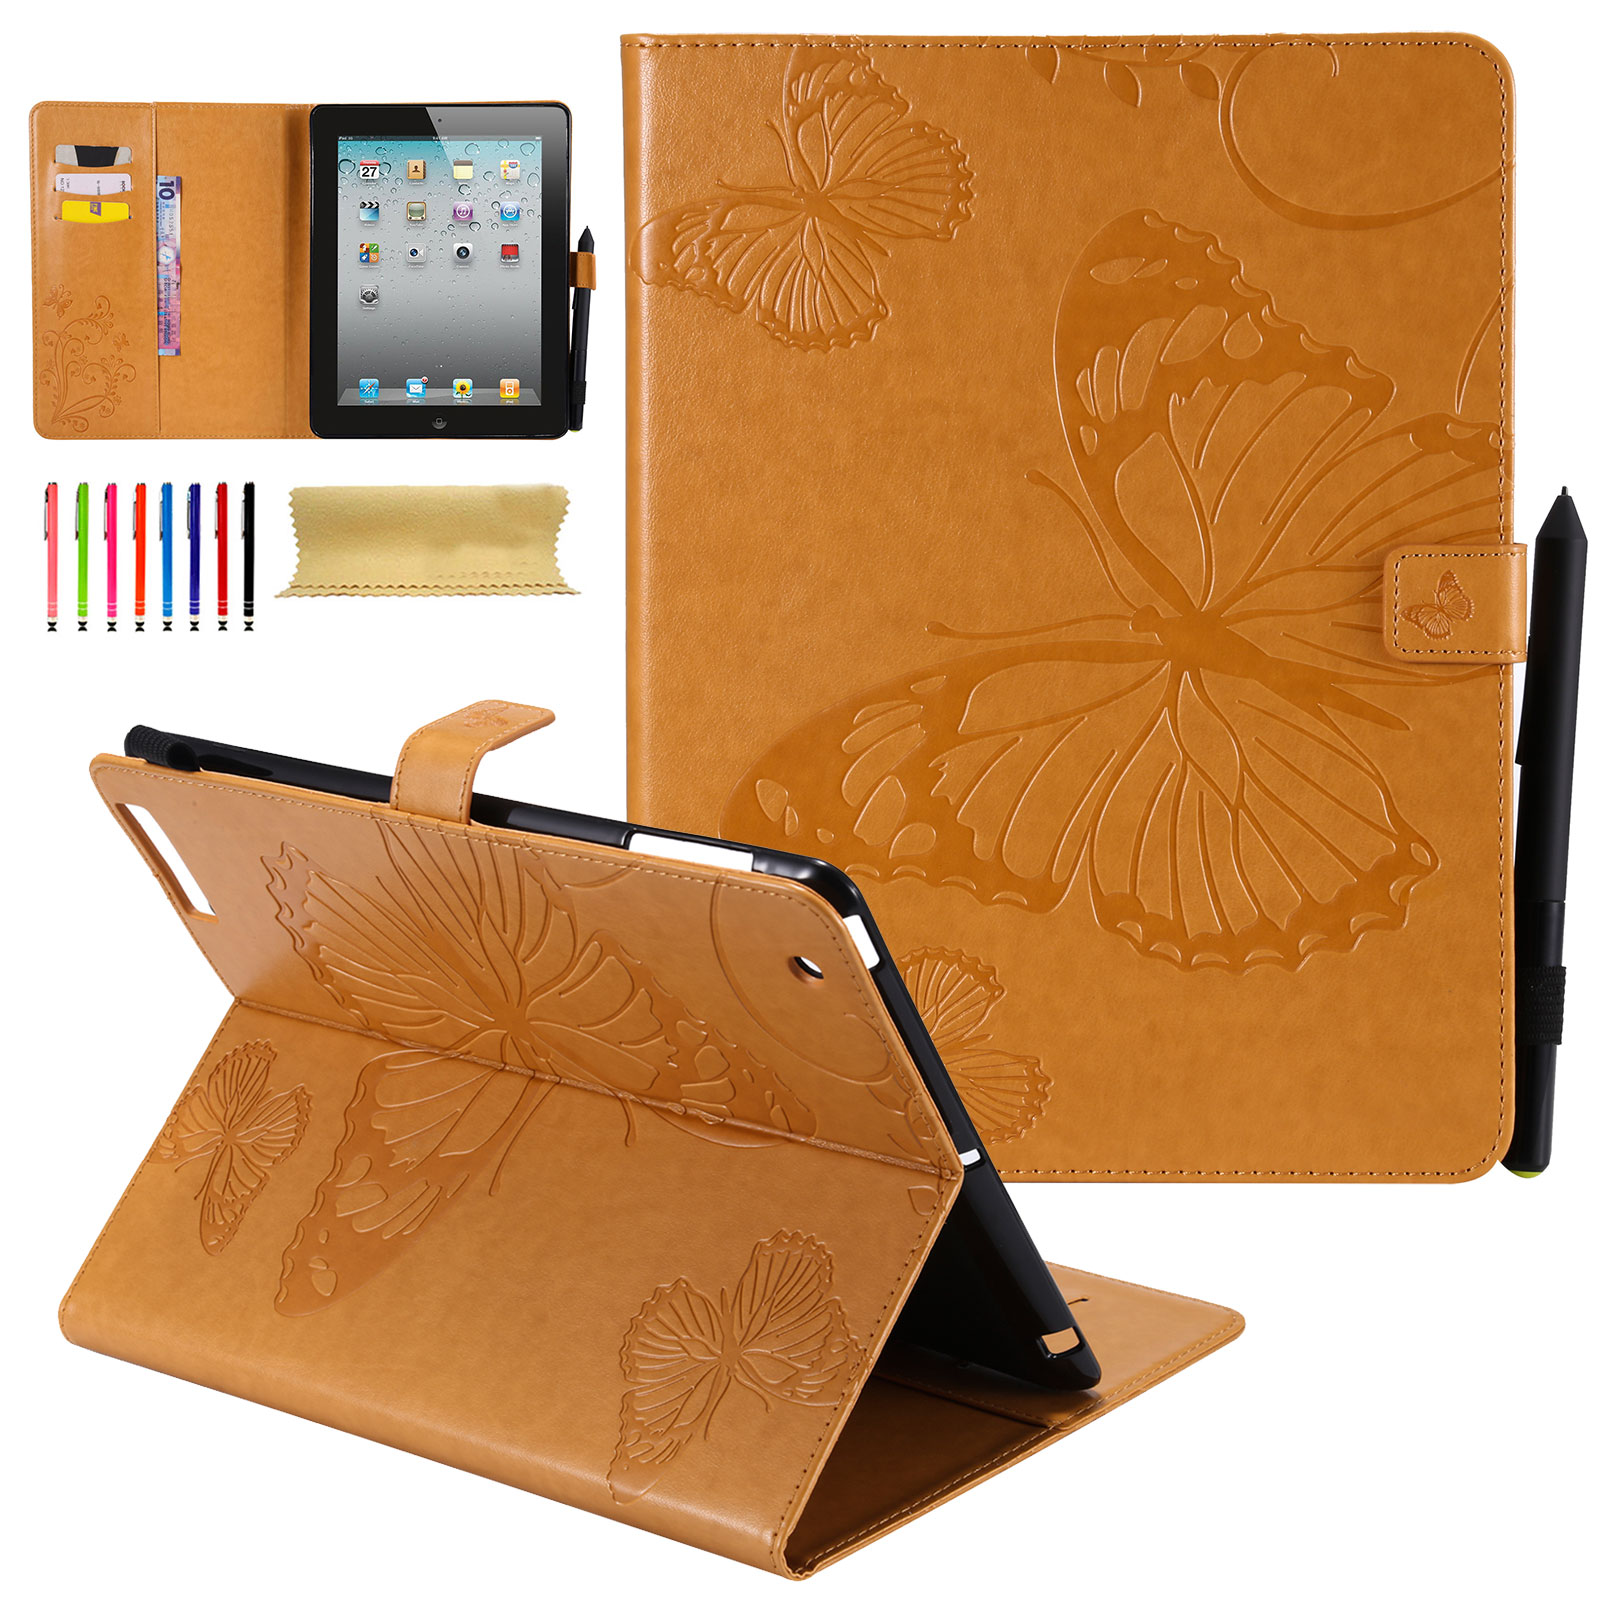 iPad 4 Case, iPad 3 Case, iPad 2 Case, Goodest [Embossed Butterfly] Smart PU Leather Folio Stand Covers and Cases w/ Auto Wake Sleep Function for Apple 9.7 inch iPad 2nd / 3rd / 4th Generation, Yellow